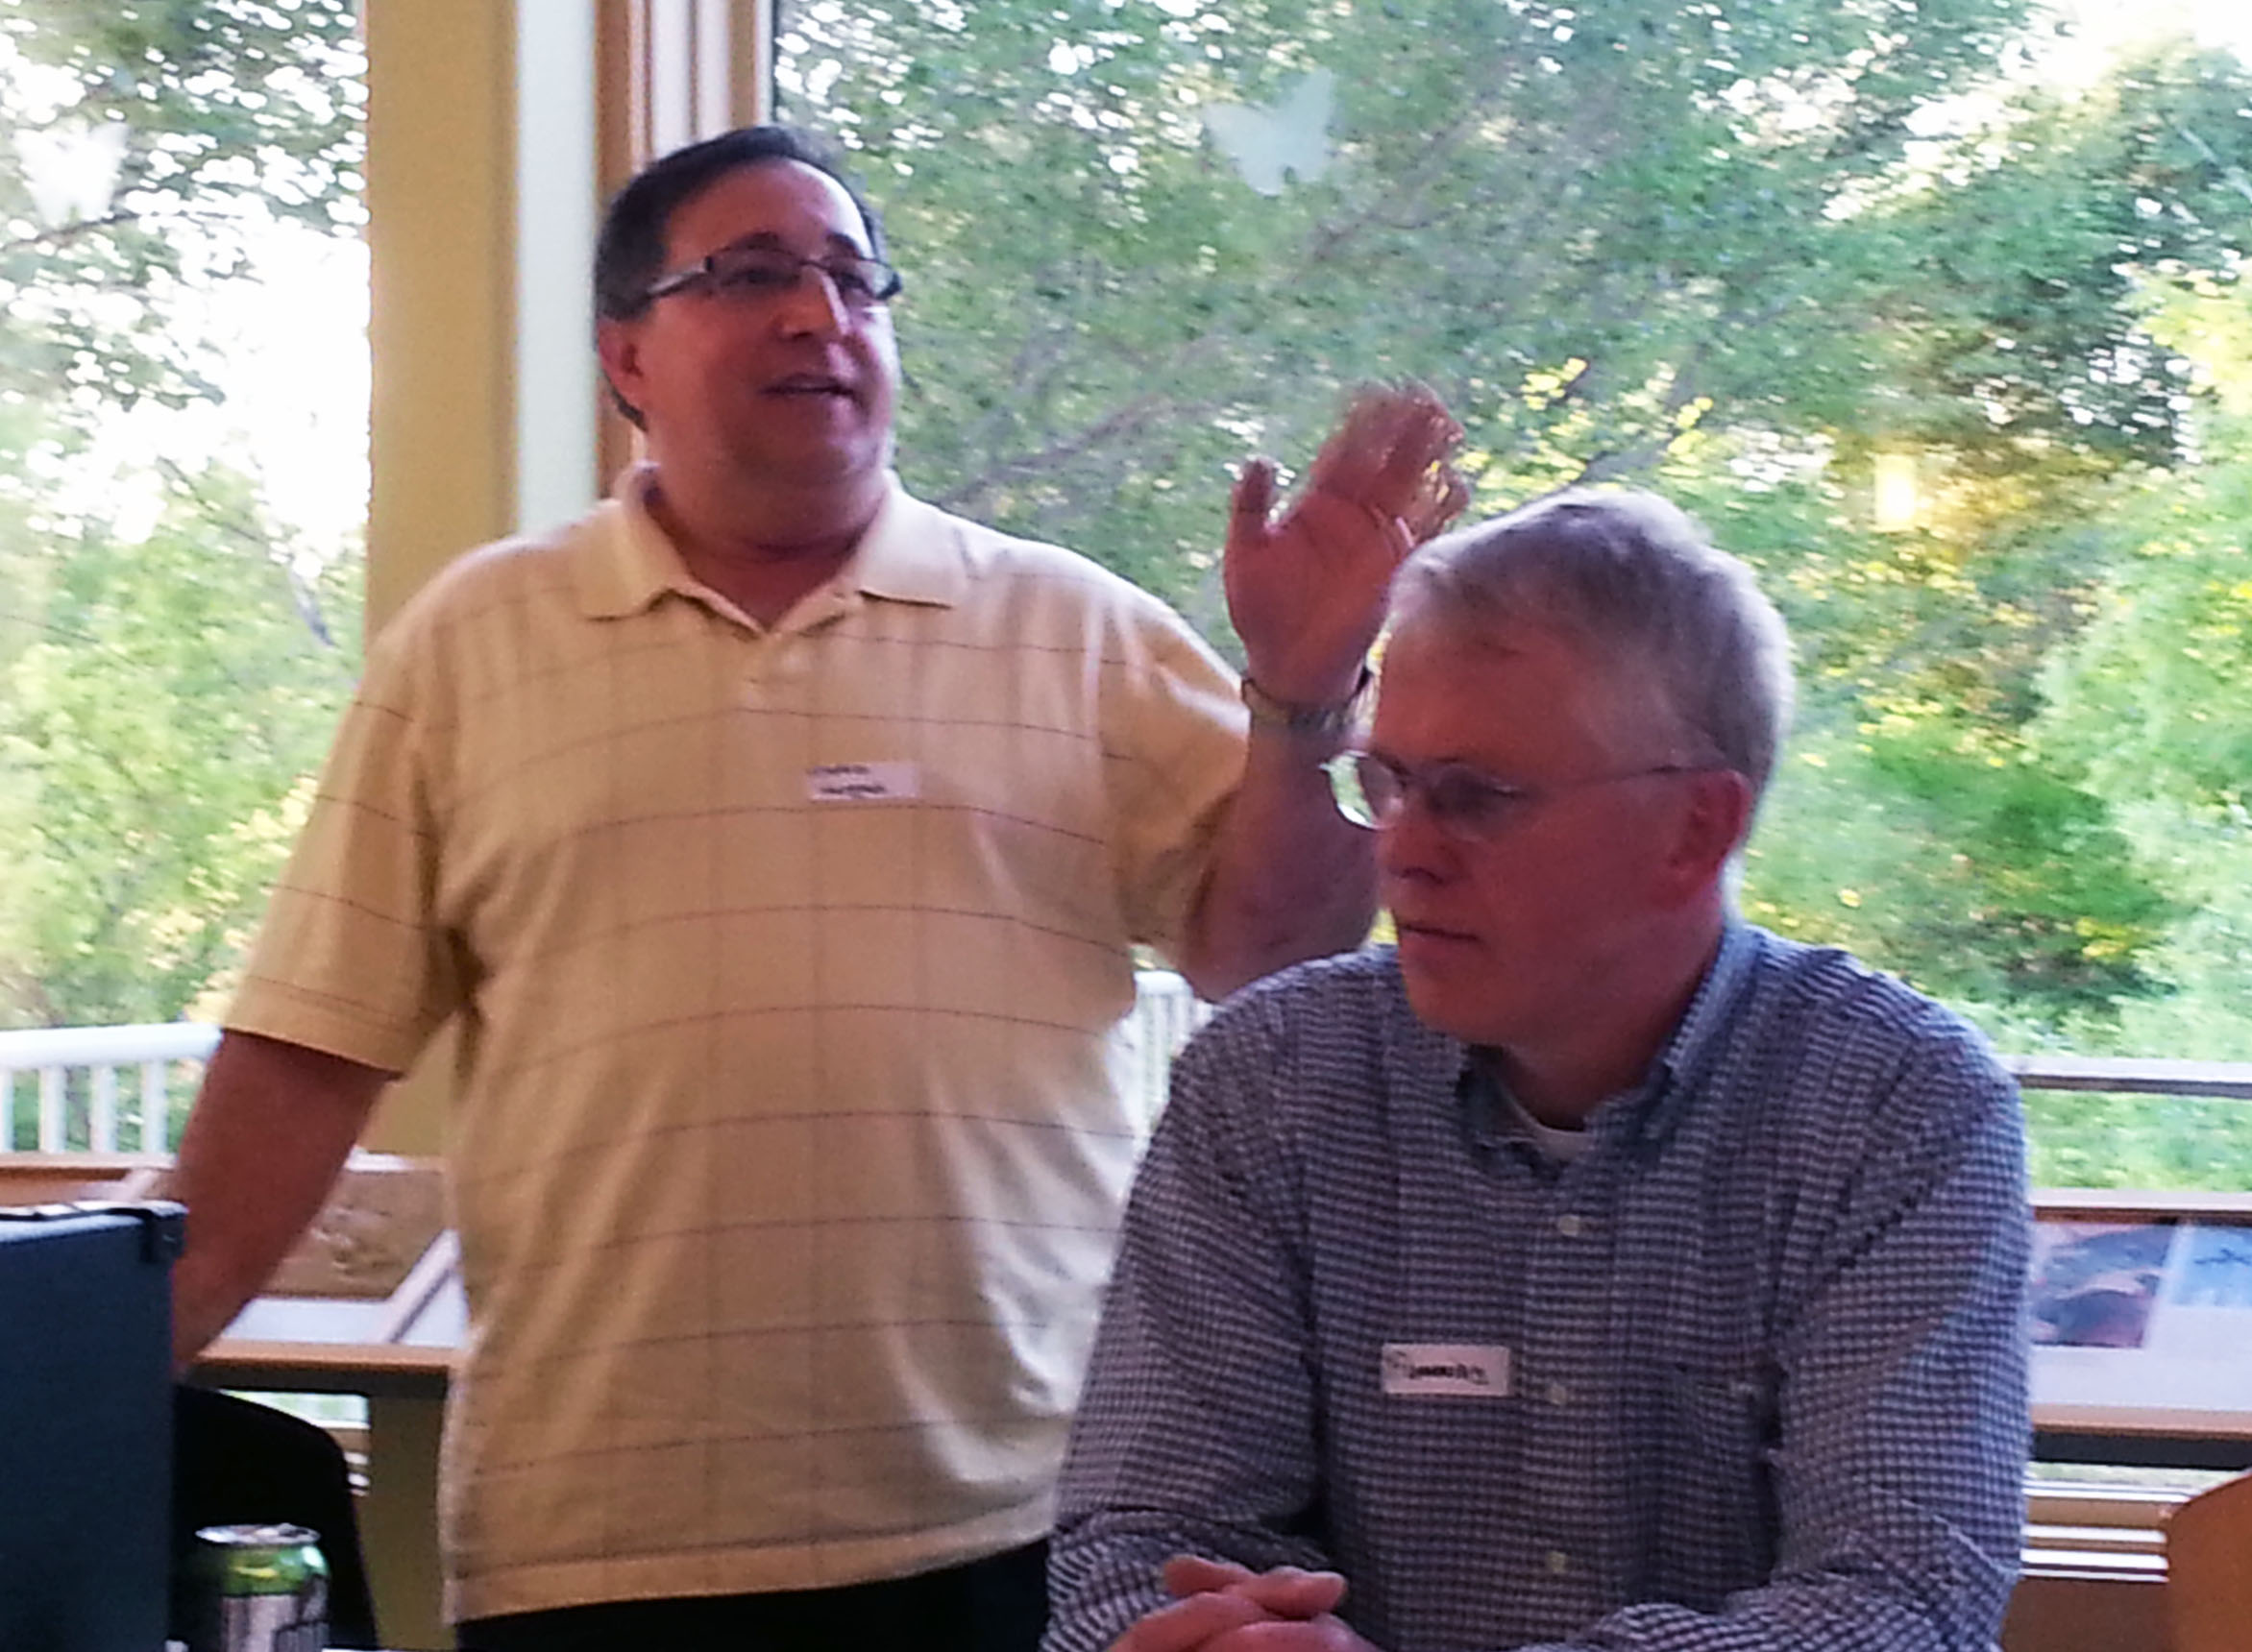 Mario Vargas (left) spoke about post-ice-dam insurance claims at BBR's annual meeting, where he was joined by panelist Flemming Lund (right).